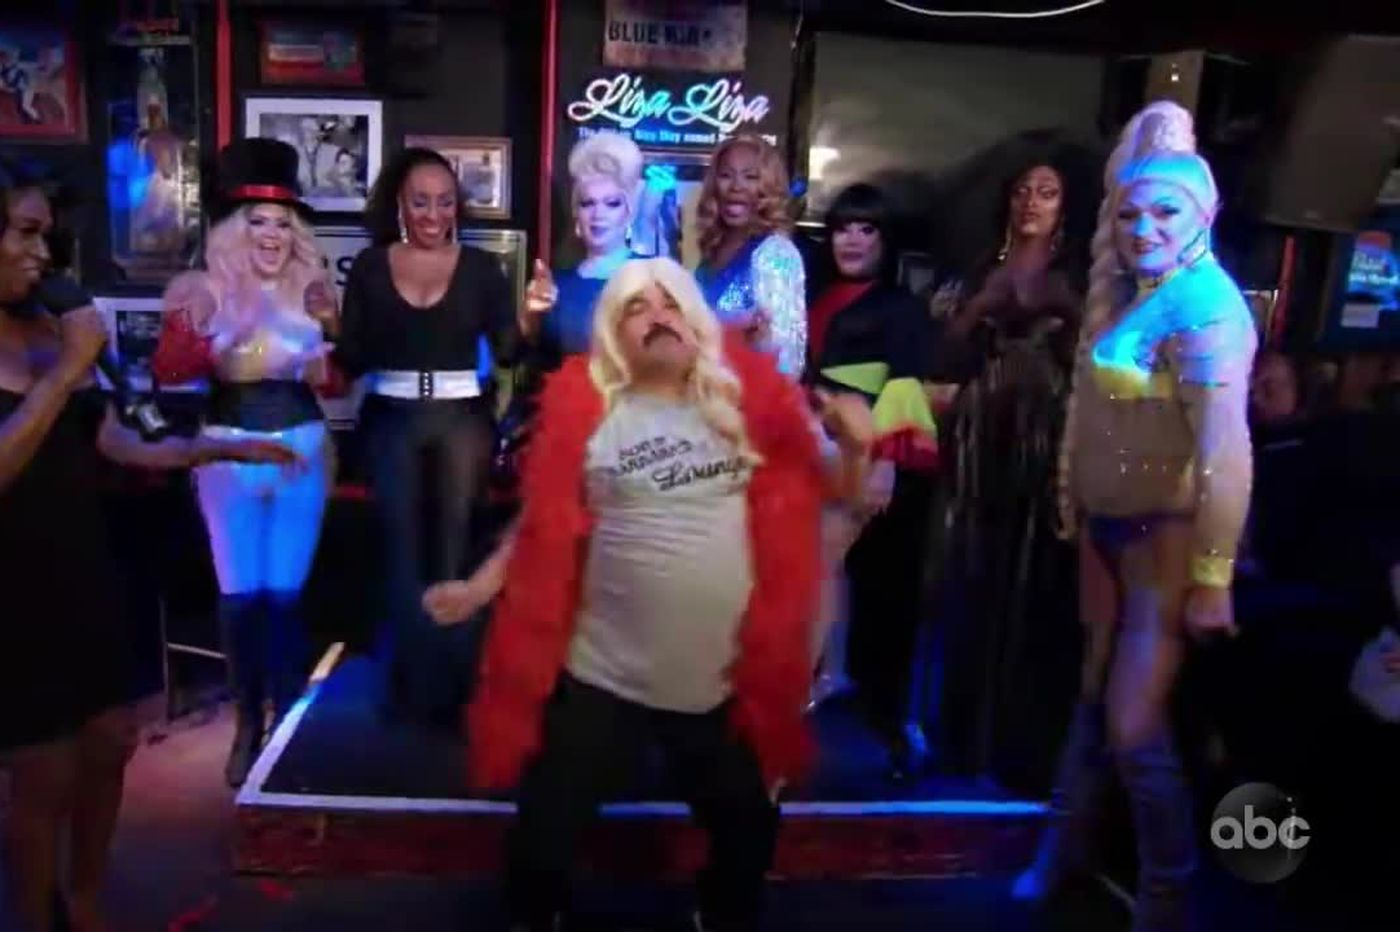 'Jimmy Kimmel' correspondent Guillermo visits famed Philly dive Bob and Barbara's